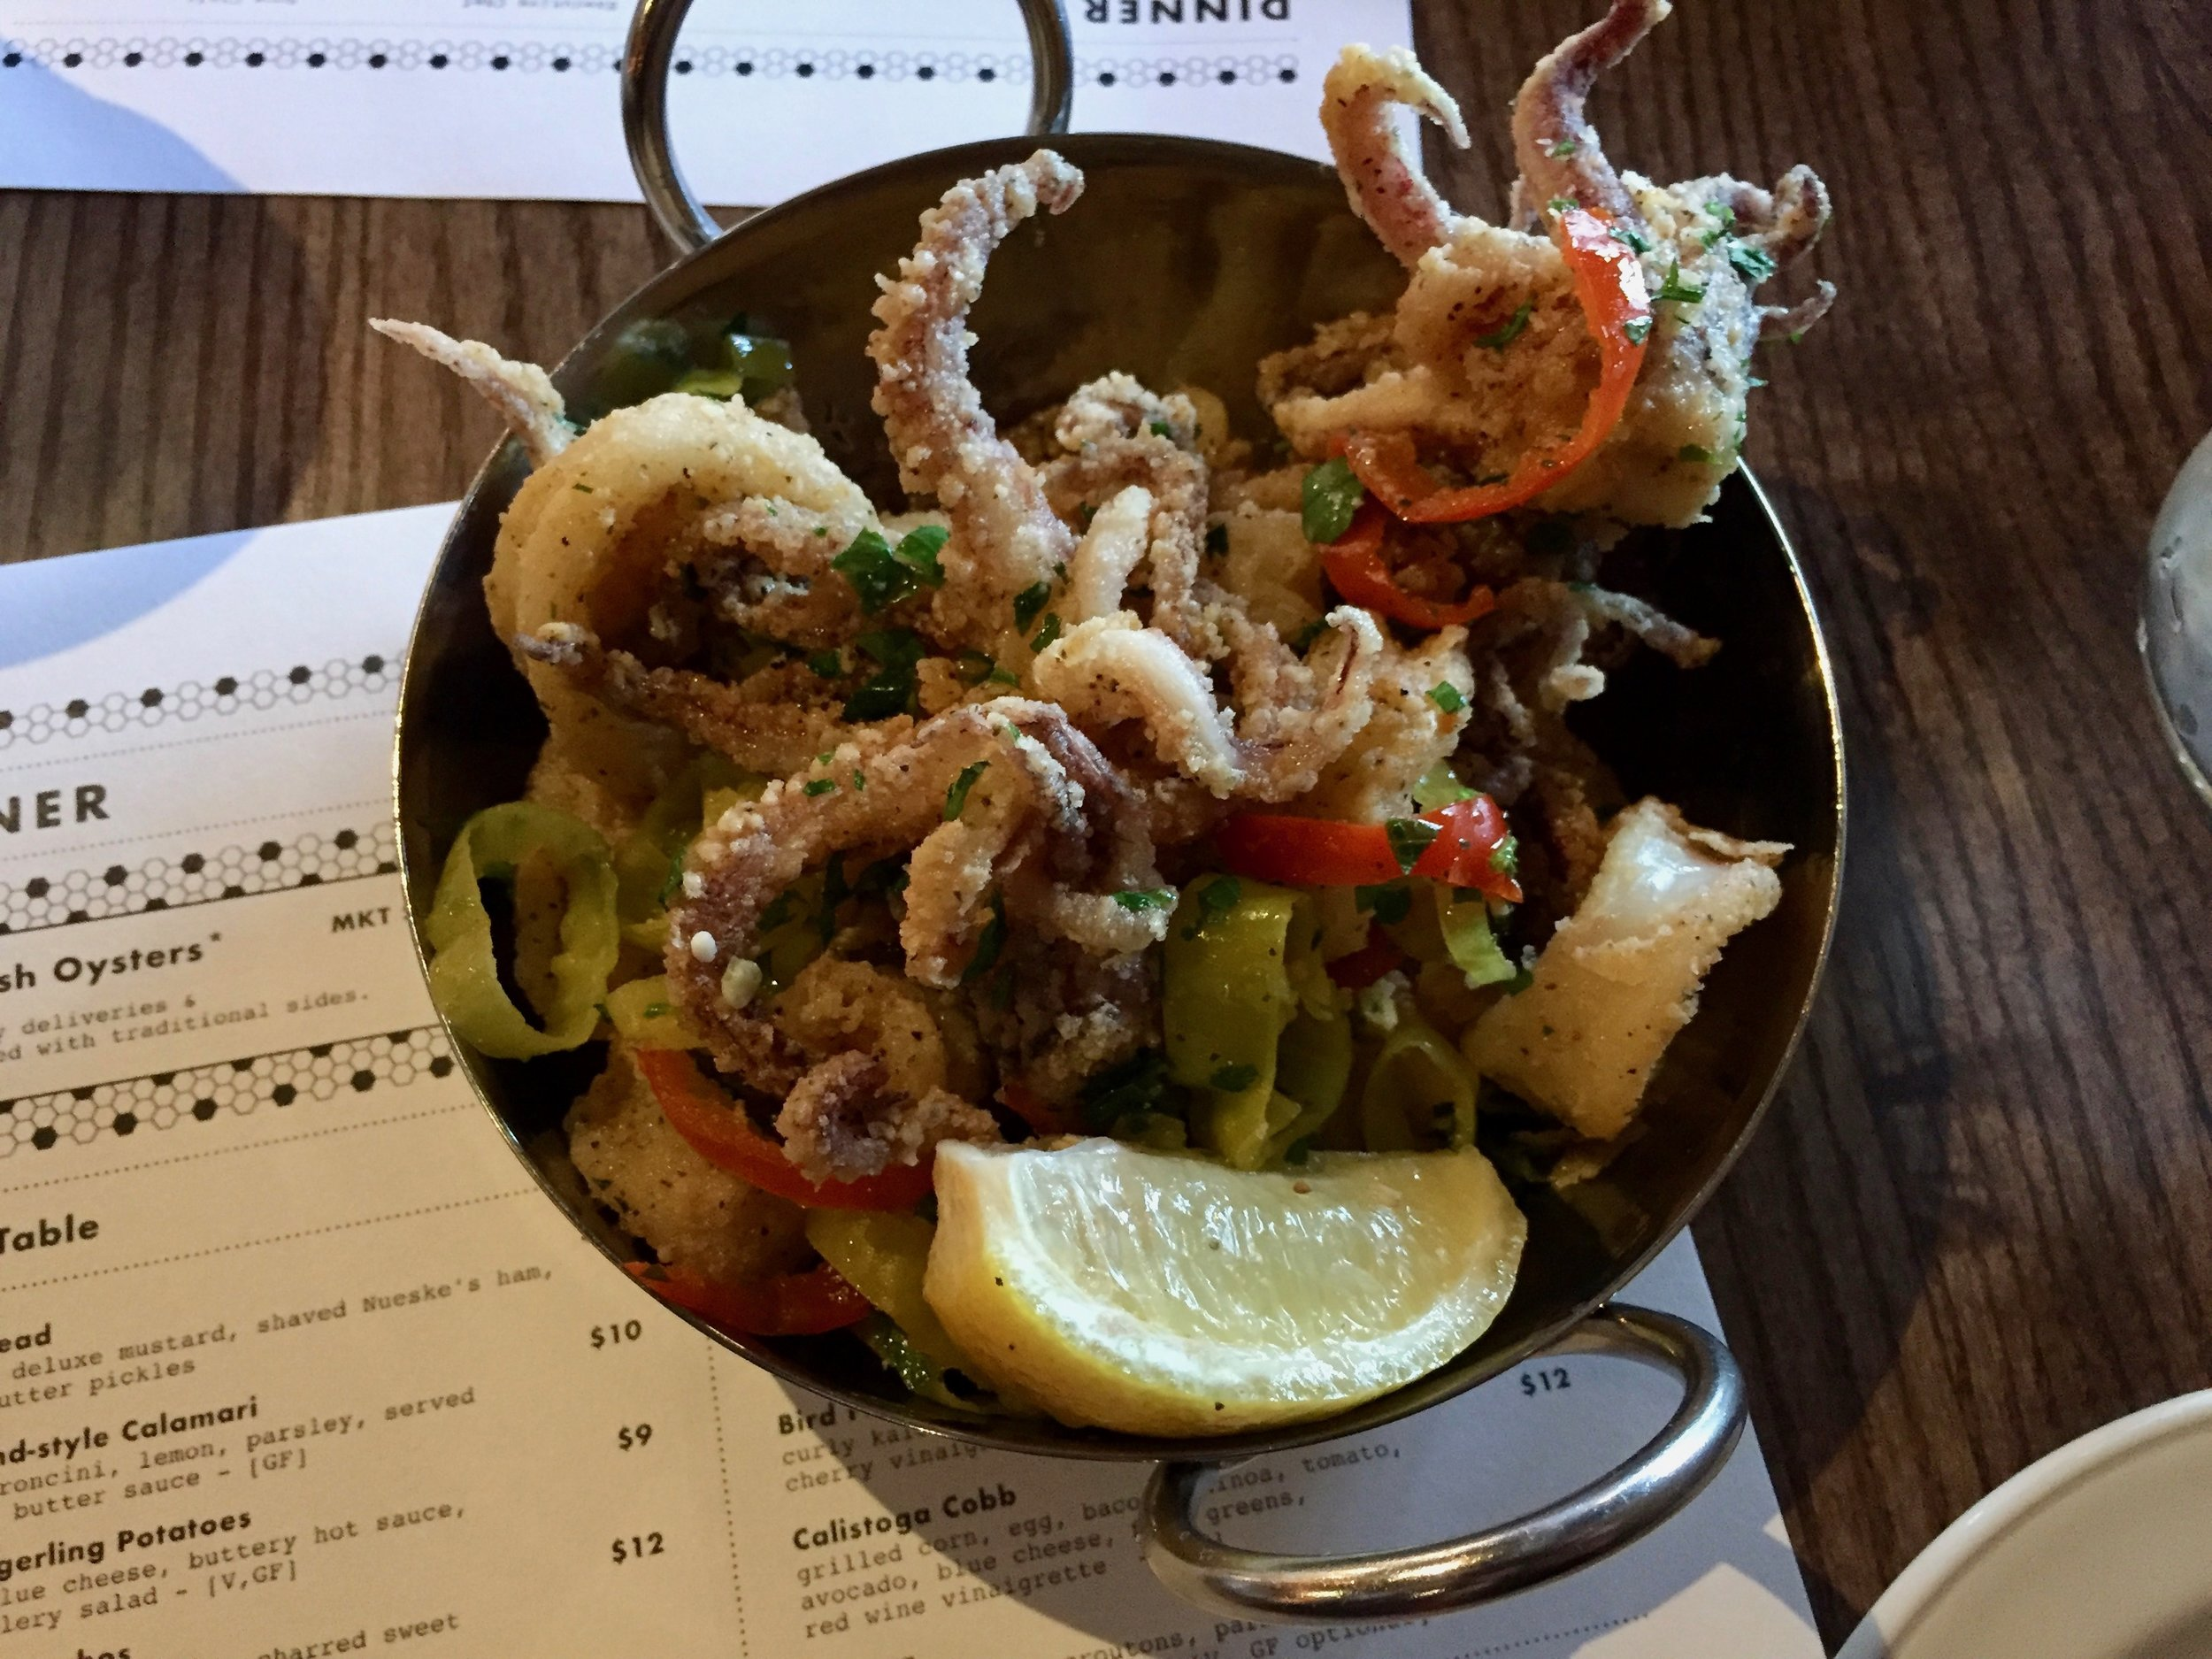 The Calamari at Noco Provisions, tasty!